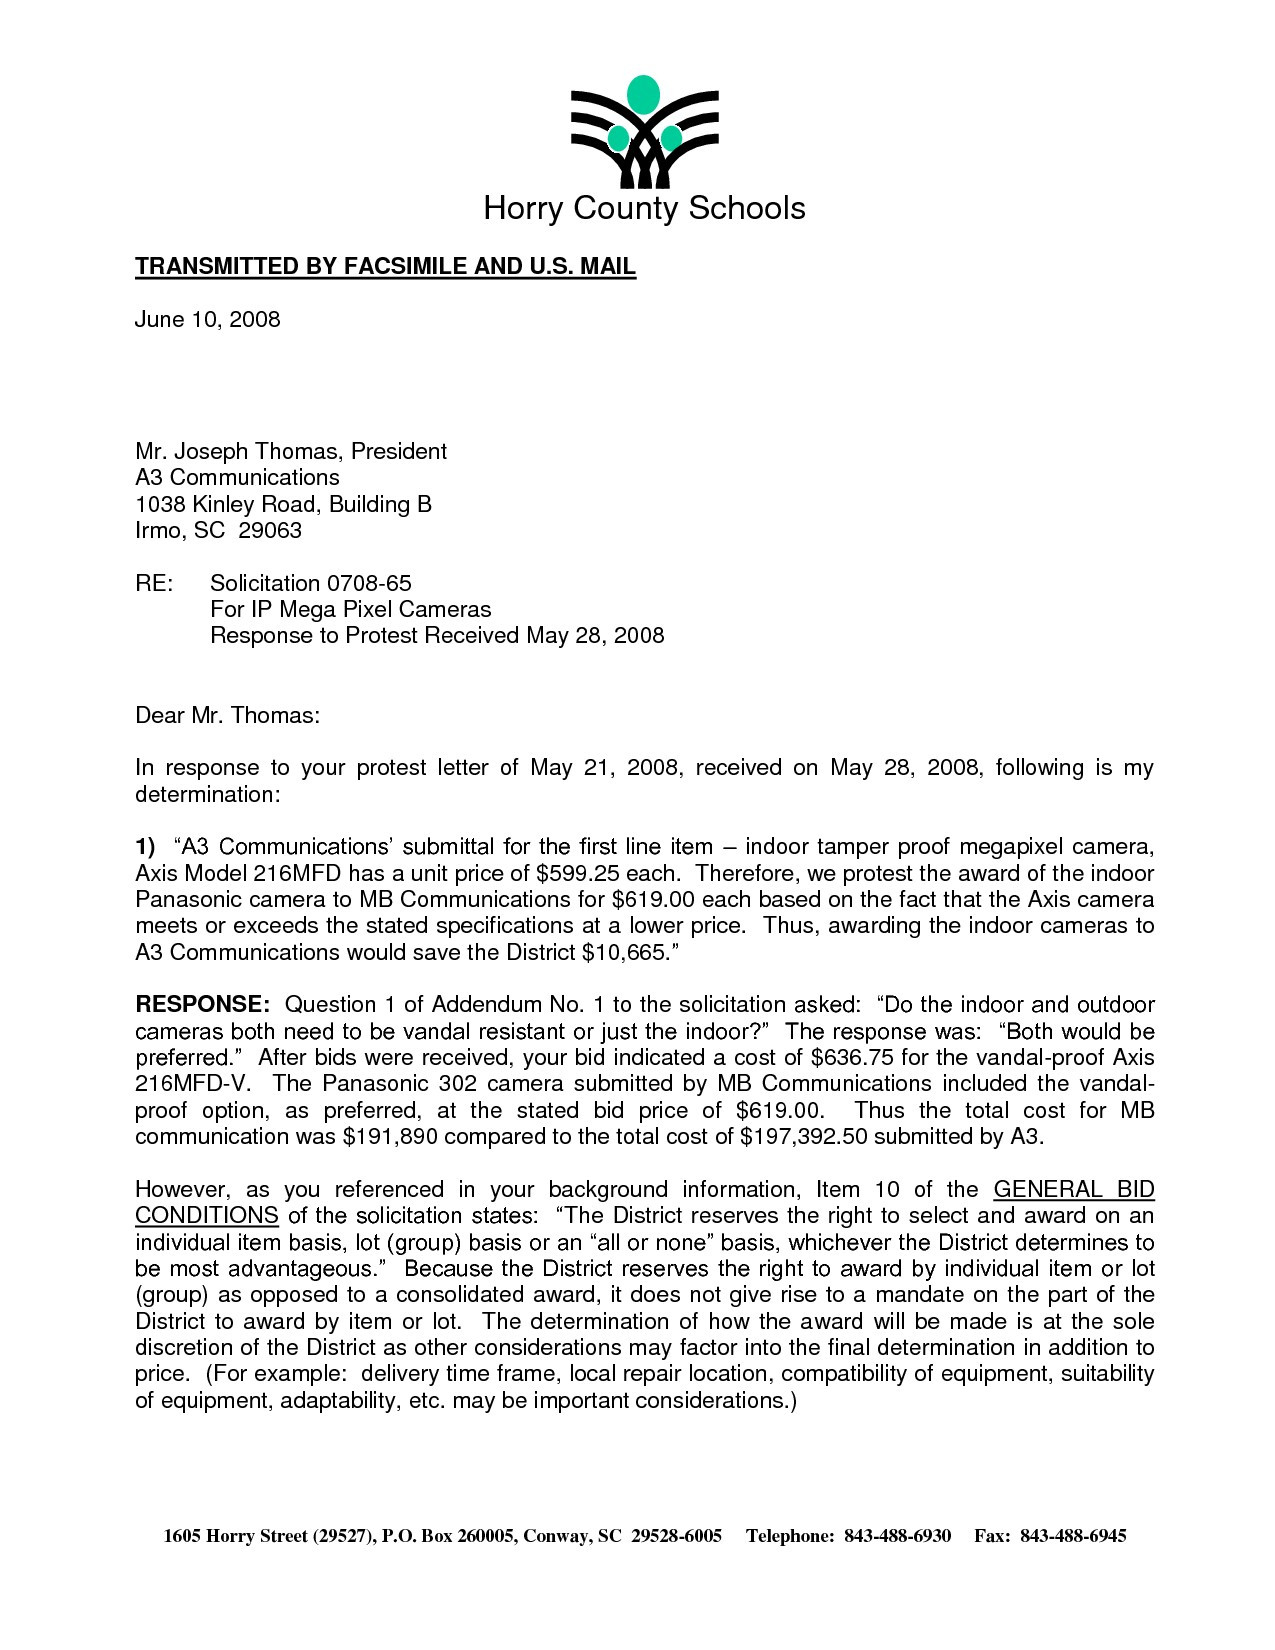 Tax Protest Letter Template - Irs 501c3 Determination Letter Sample Unique Great Irs Response